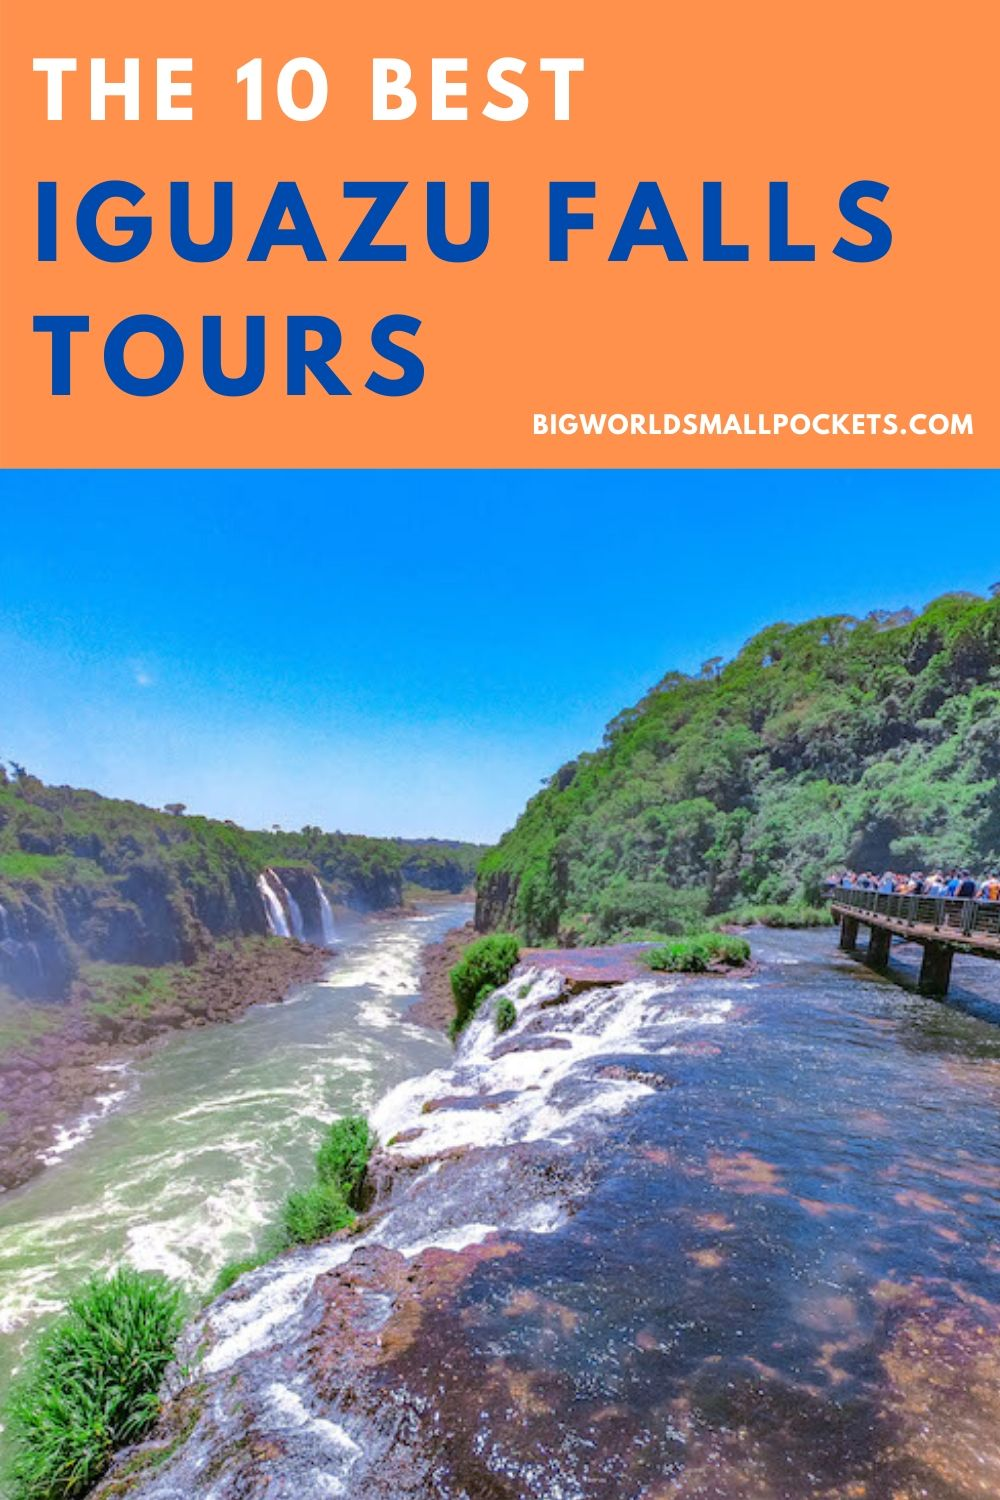 The 10 Best Iguazu Falls Tours + 1 Self-Guided Option for Budget Travellers